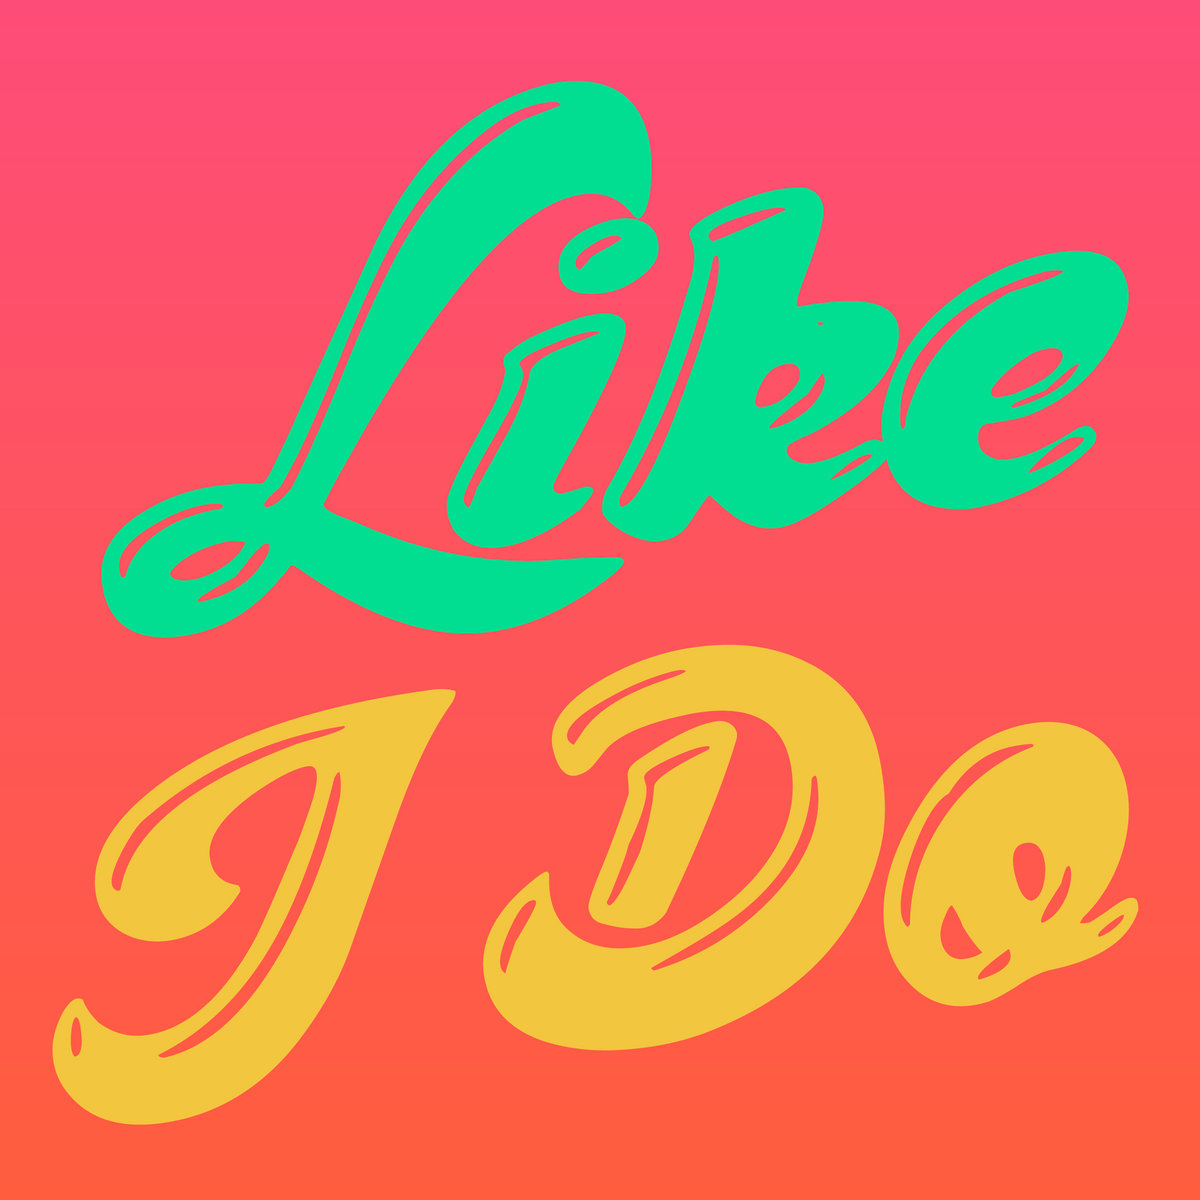 Like I Do by Jada Brown